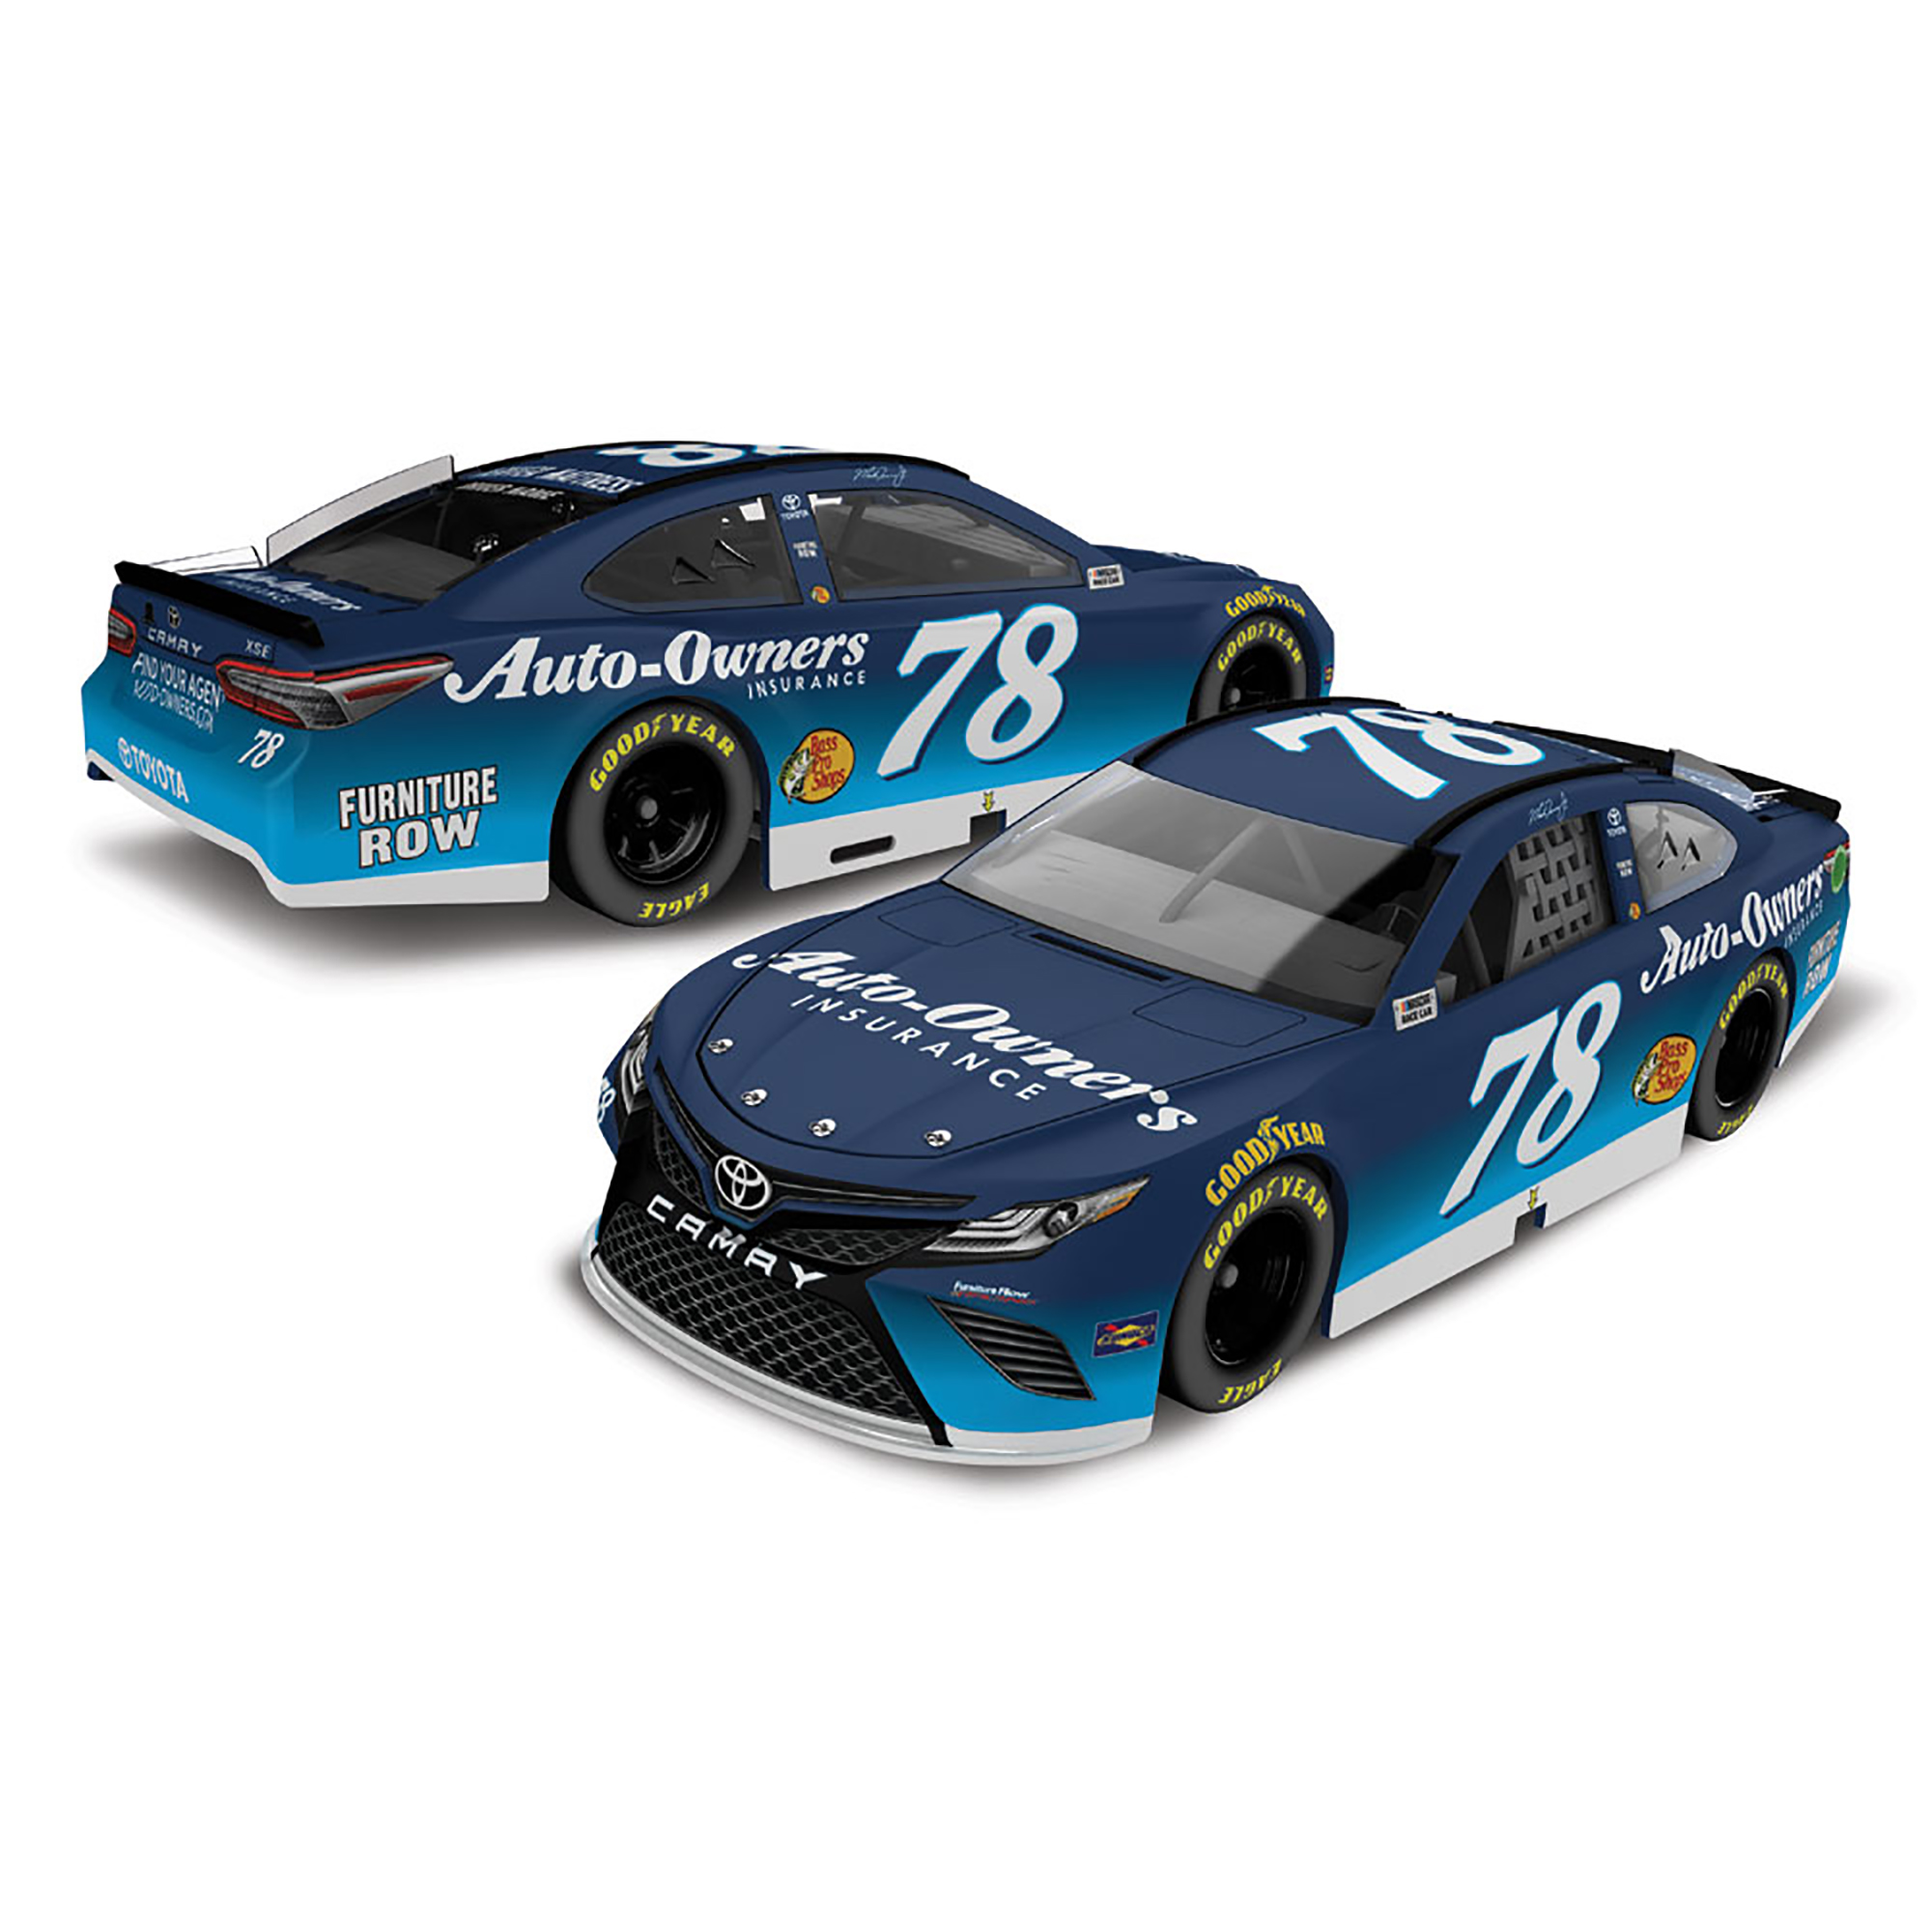 Martin Truex Jr Action Racing 2018 #78 Auto-Owners Insurance 1:64 Monster Energy Nascar... by Lionel LLC